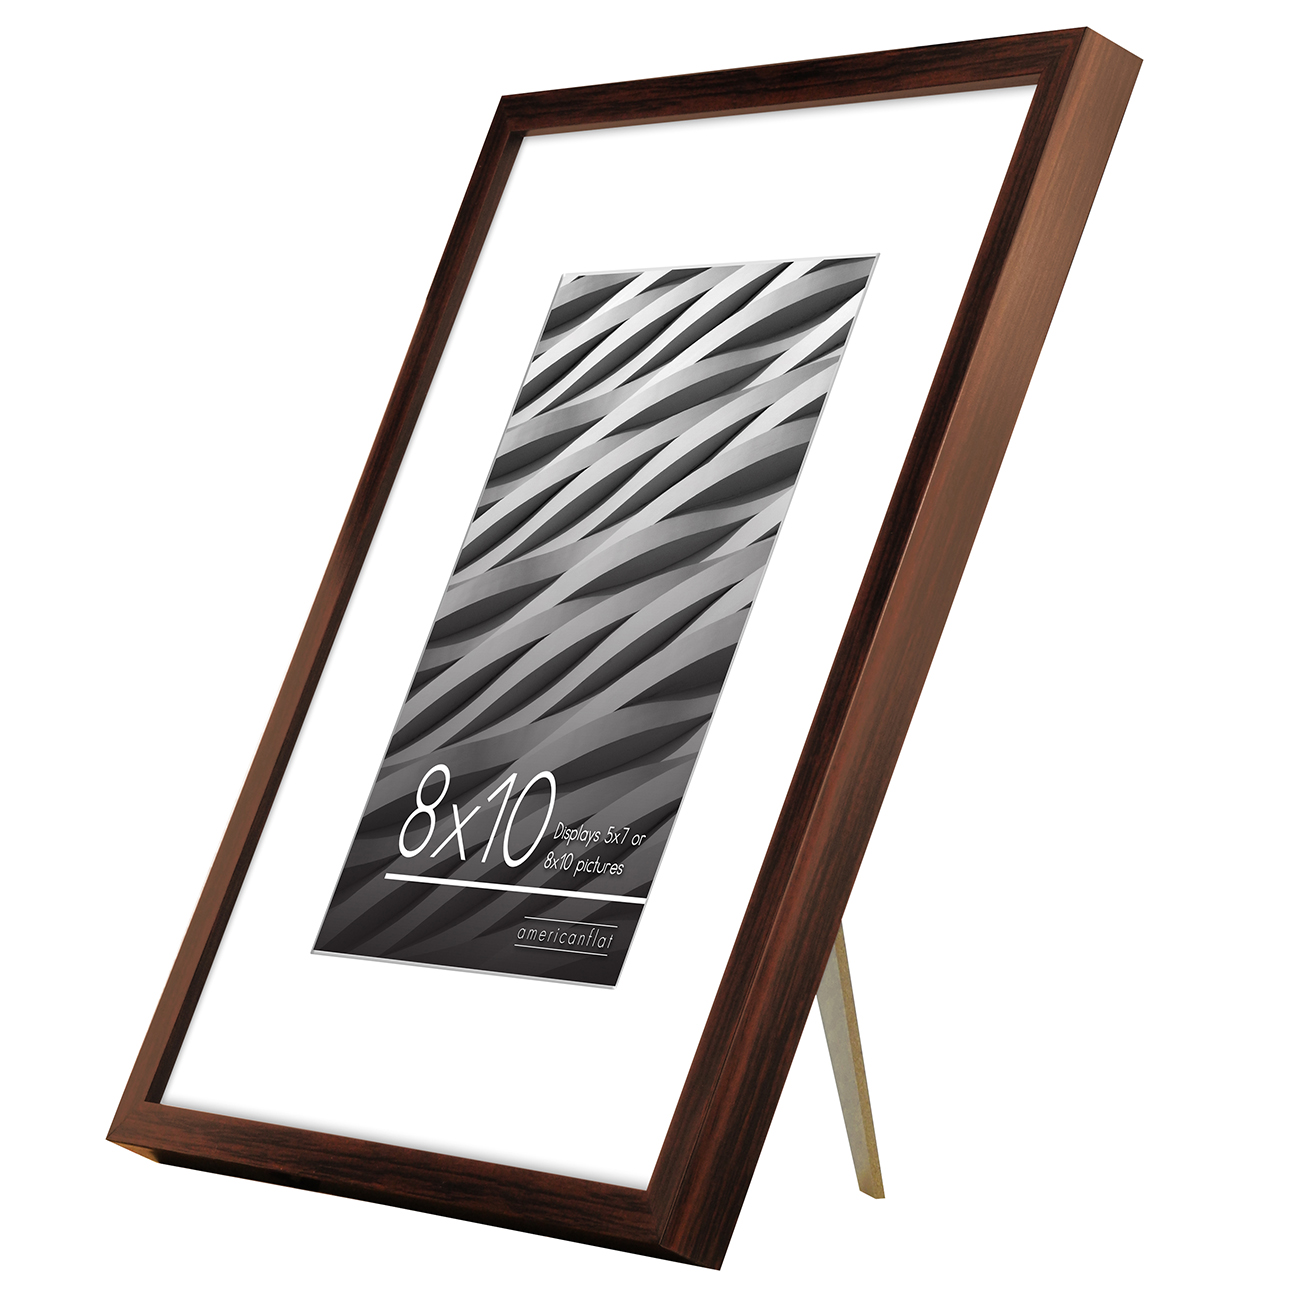 miniature 57 - Americanflat Thin Picture Frame 5x7 8x10 11x14 8.5x11 Wall Tabletop Pick Color